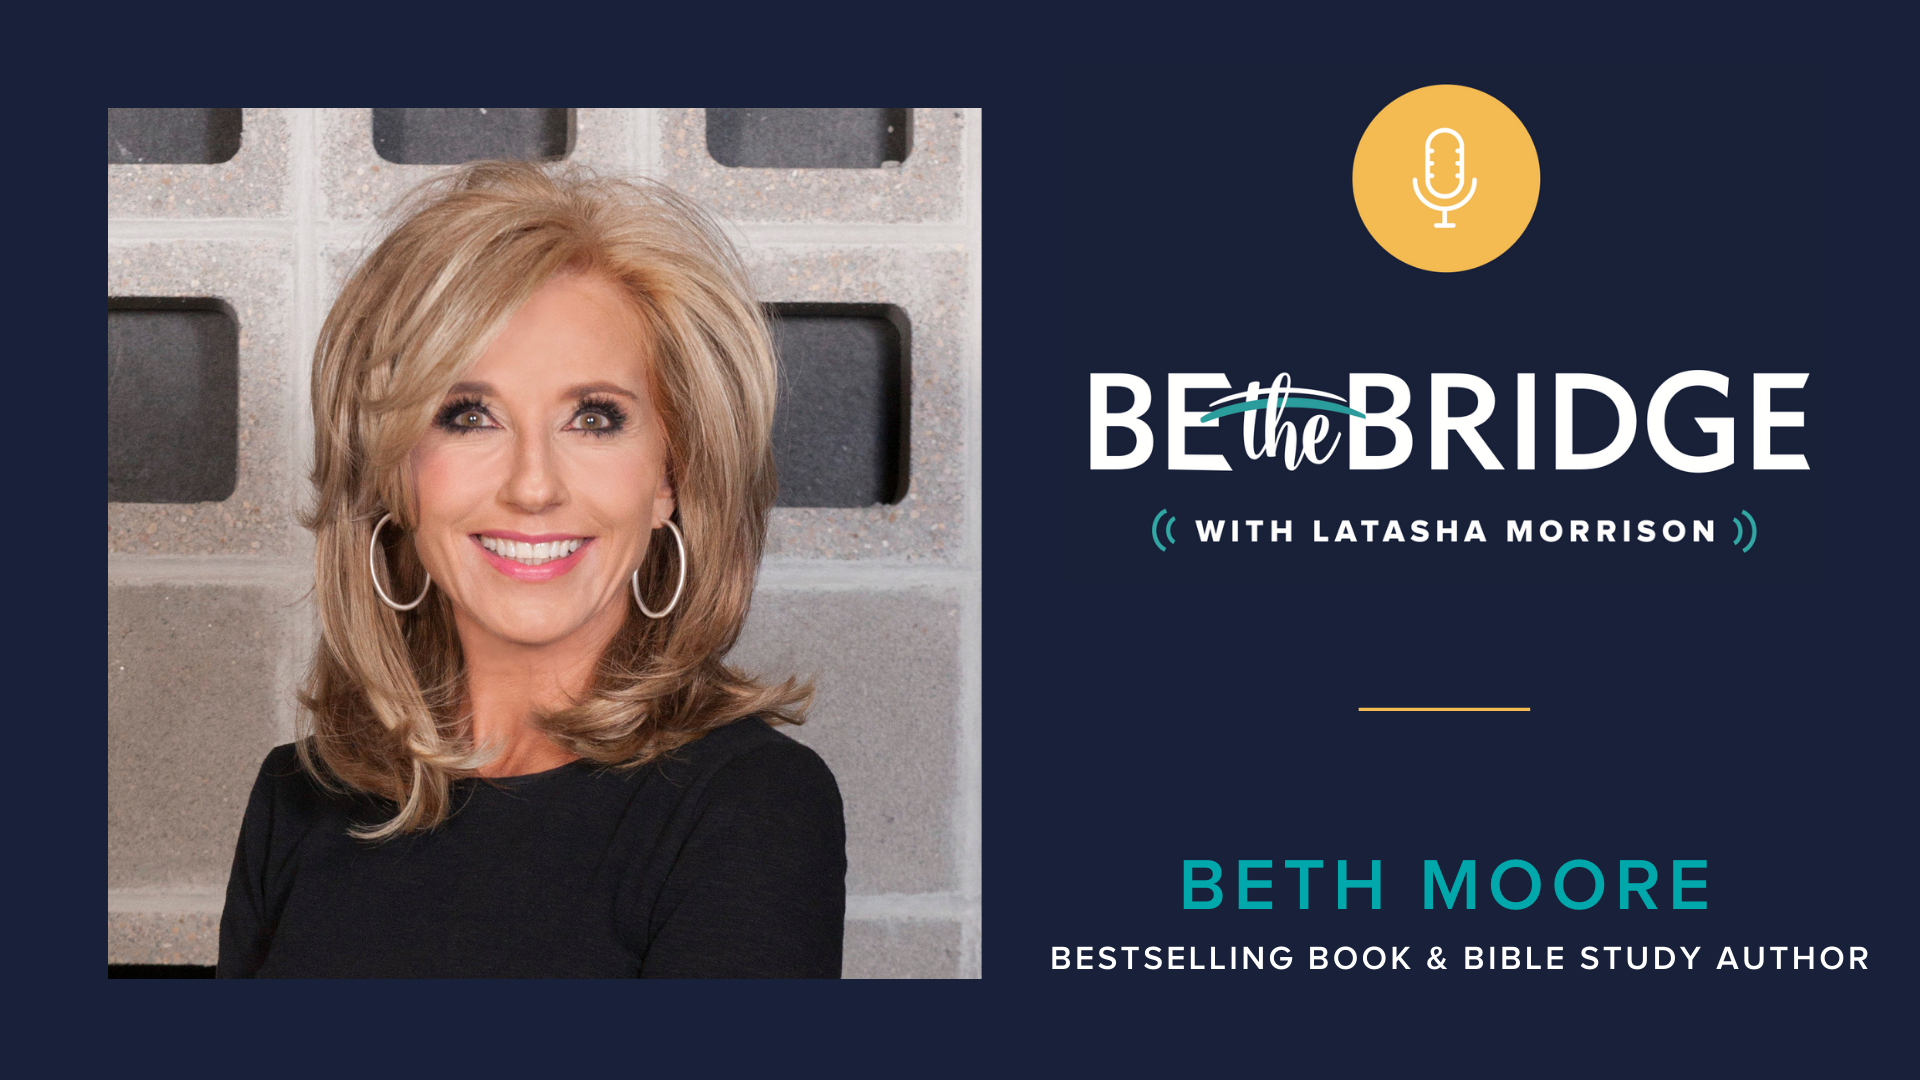 Episode 8 Faith Leaders Raising Their Voices With Beth Moore Be The Bridge To Racial Unity